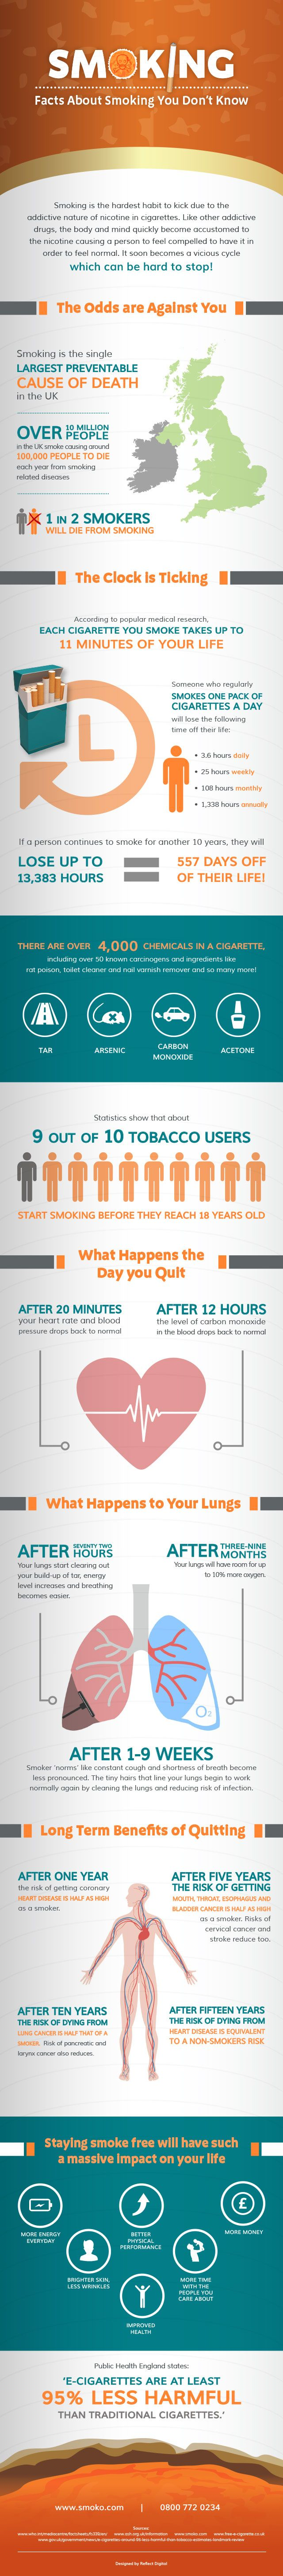 We have worked closely with SMOKO premium electronic cigarettes to create an infographic to gain attention of smokers. It features an array of shocking facts about the side affects that smoking can have on your health. These facts are guaranteed to make you want to give up smoking not just for the New Year but for life. For more information on how to give up smoking visit the SMOKO website: http://smoko.com/